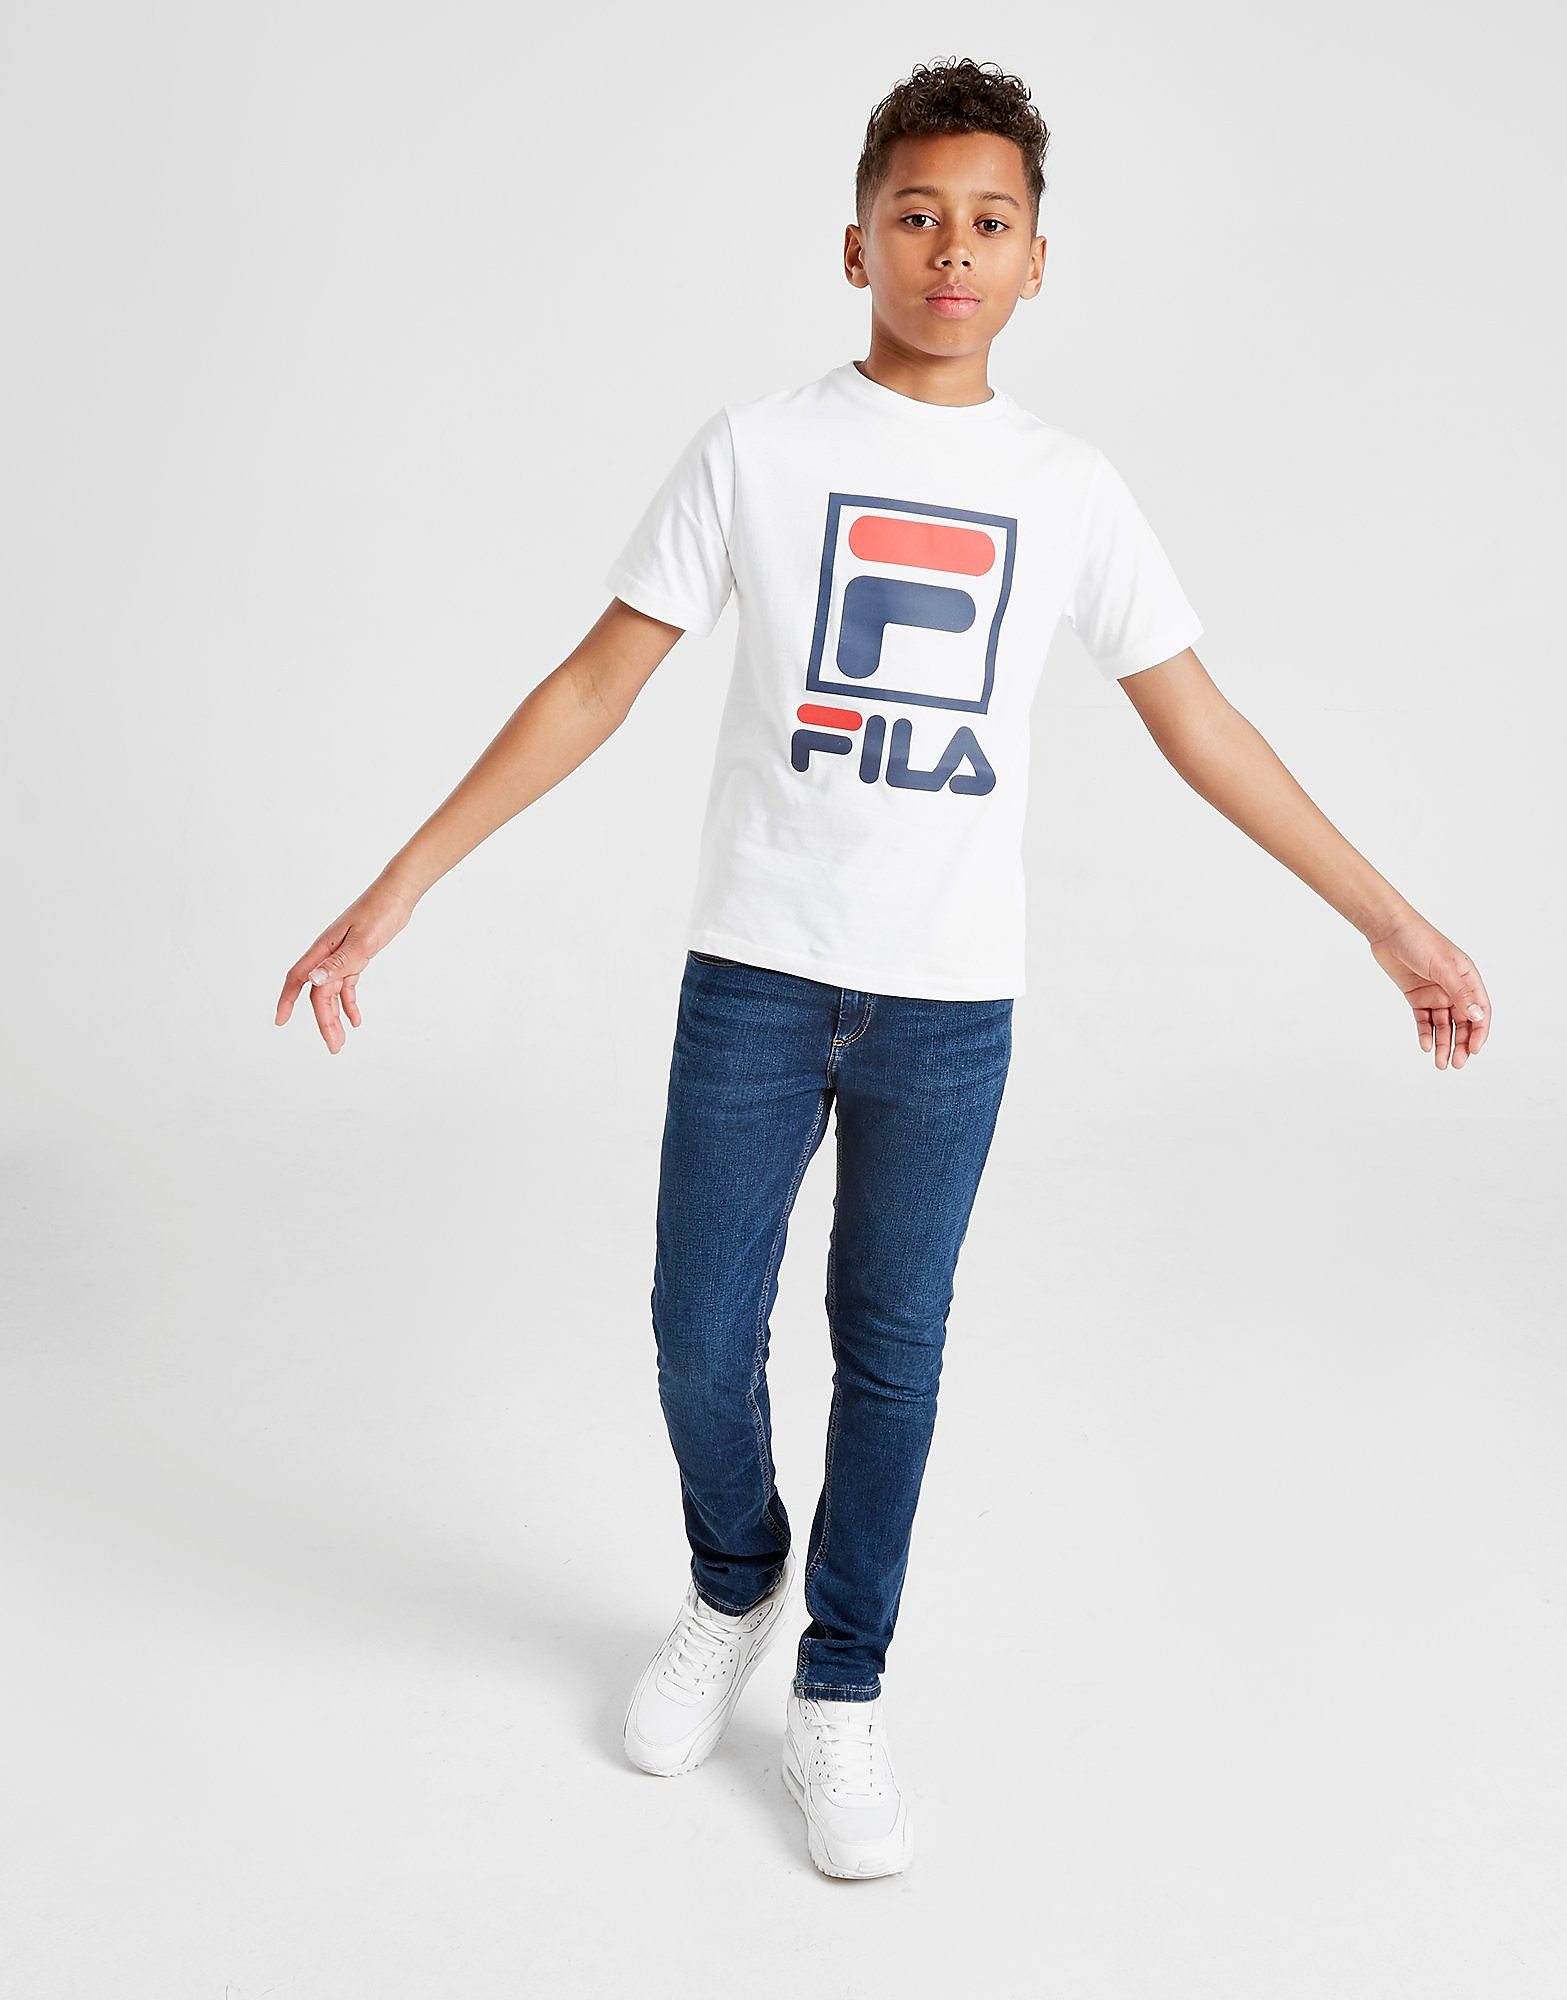 Fila T-shirt Everdeen F-Box Junior